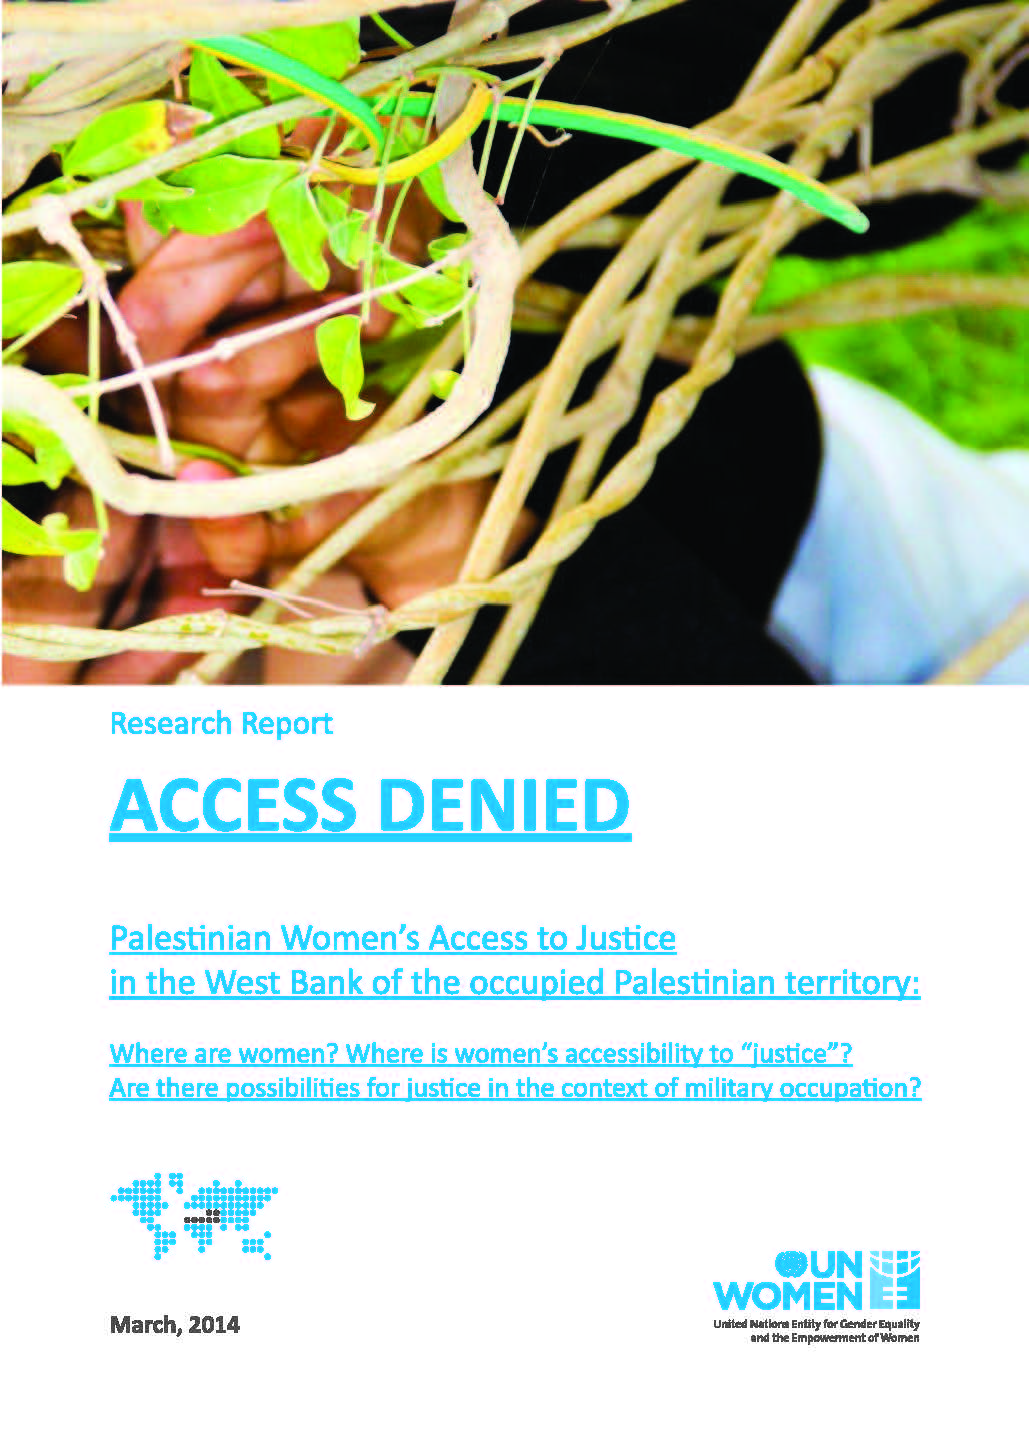 Access Denied: Palestinian Women's Access to Justice in the West Bank of the occupied Palestinian territory